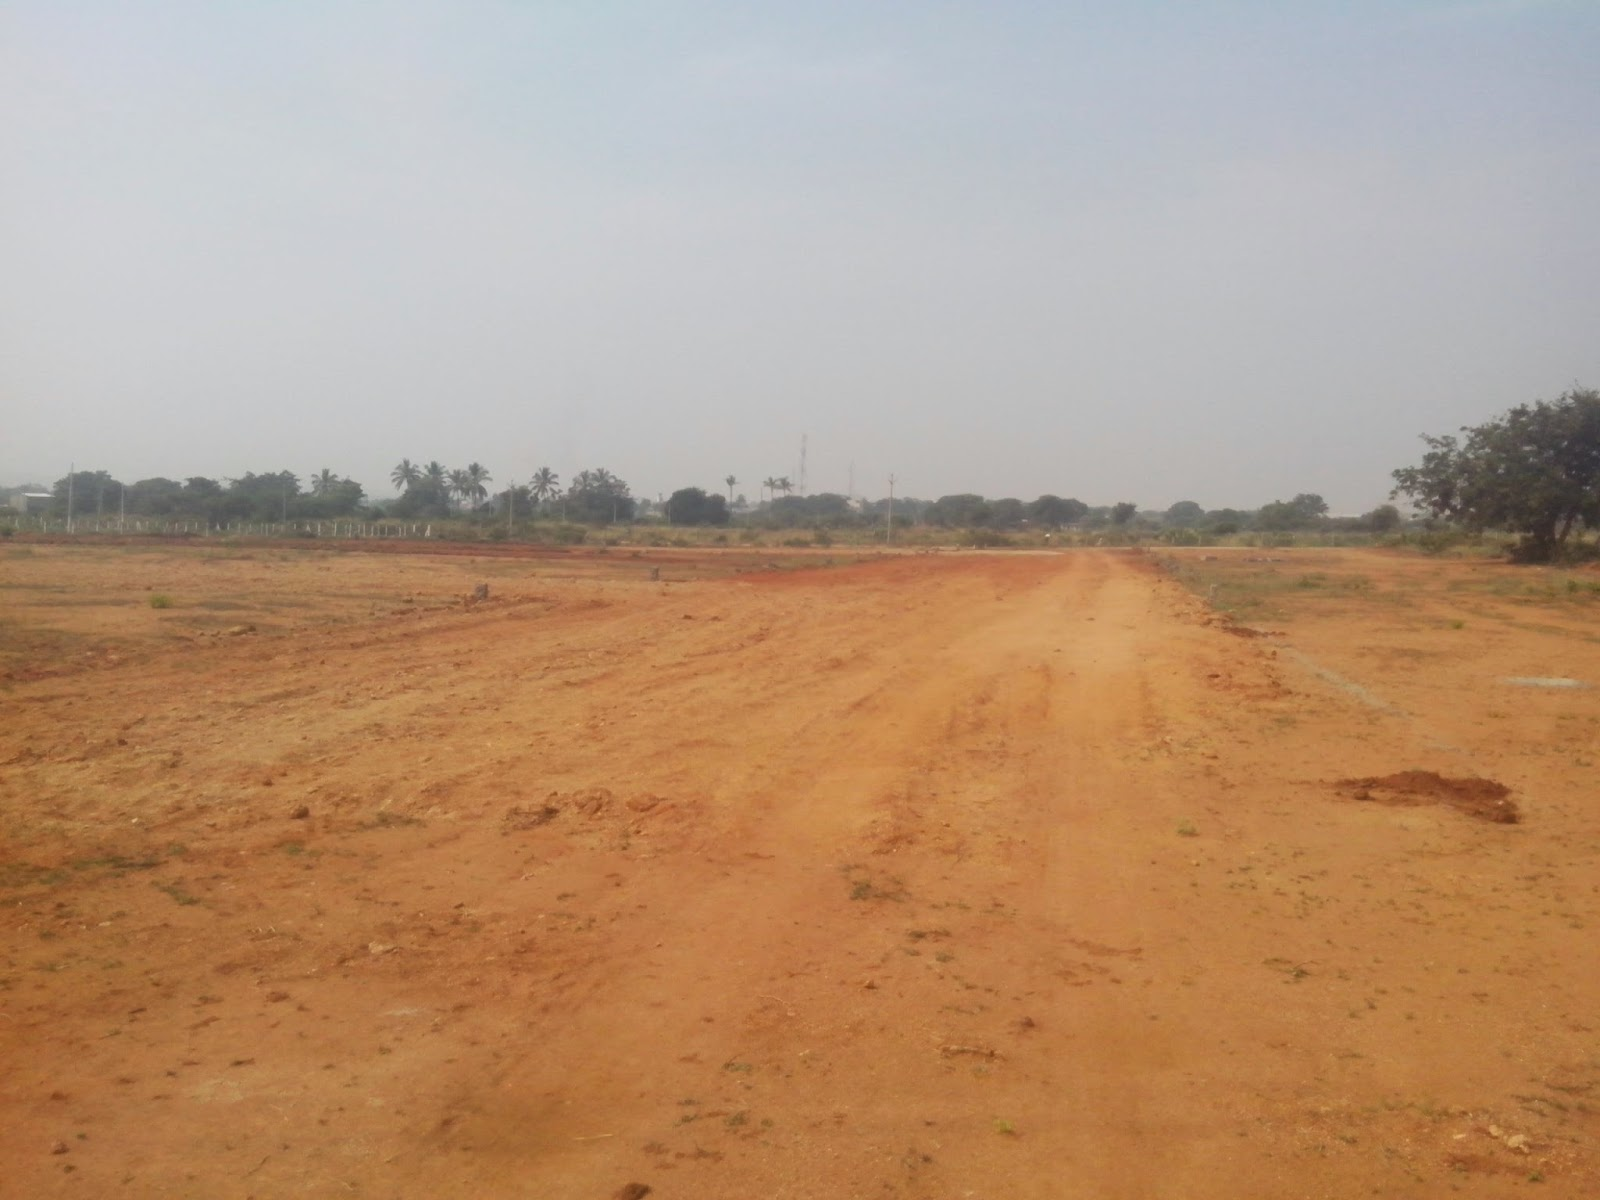 23 Acres Plain Land For Sale At Yacharam 1 5 Km From Sagar Highway